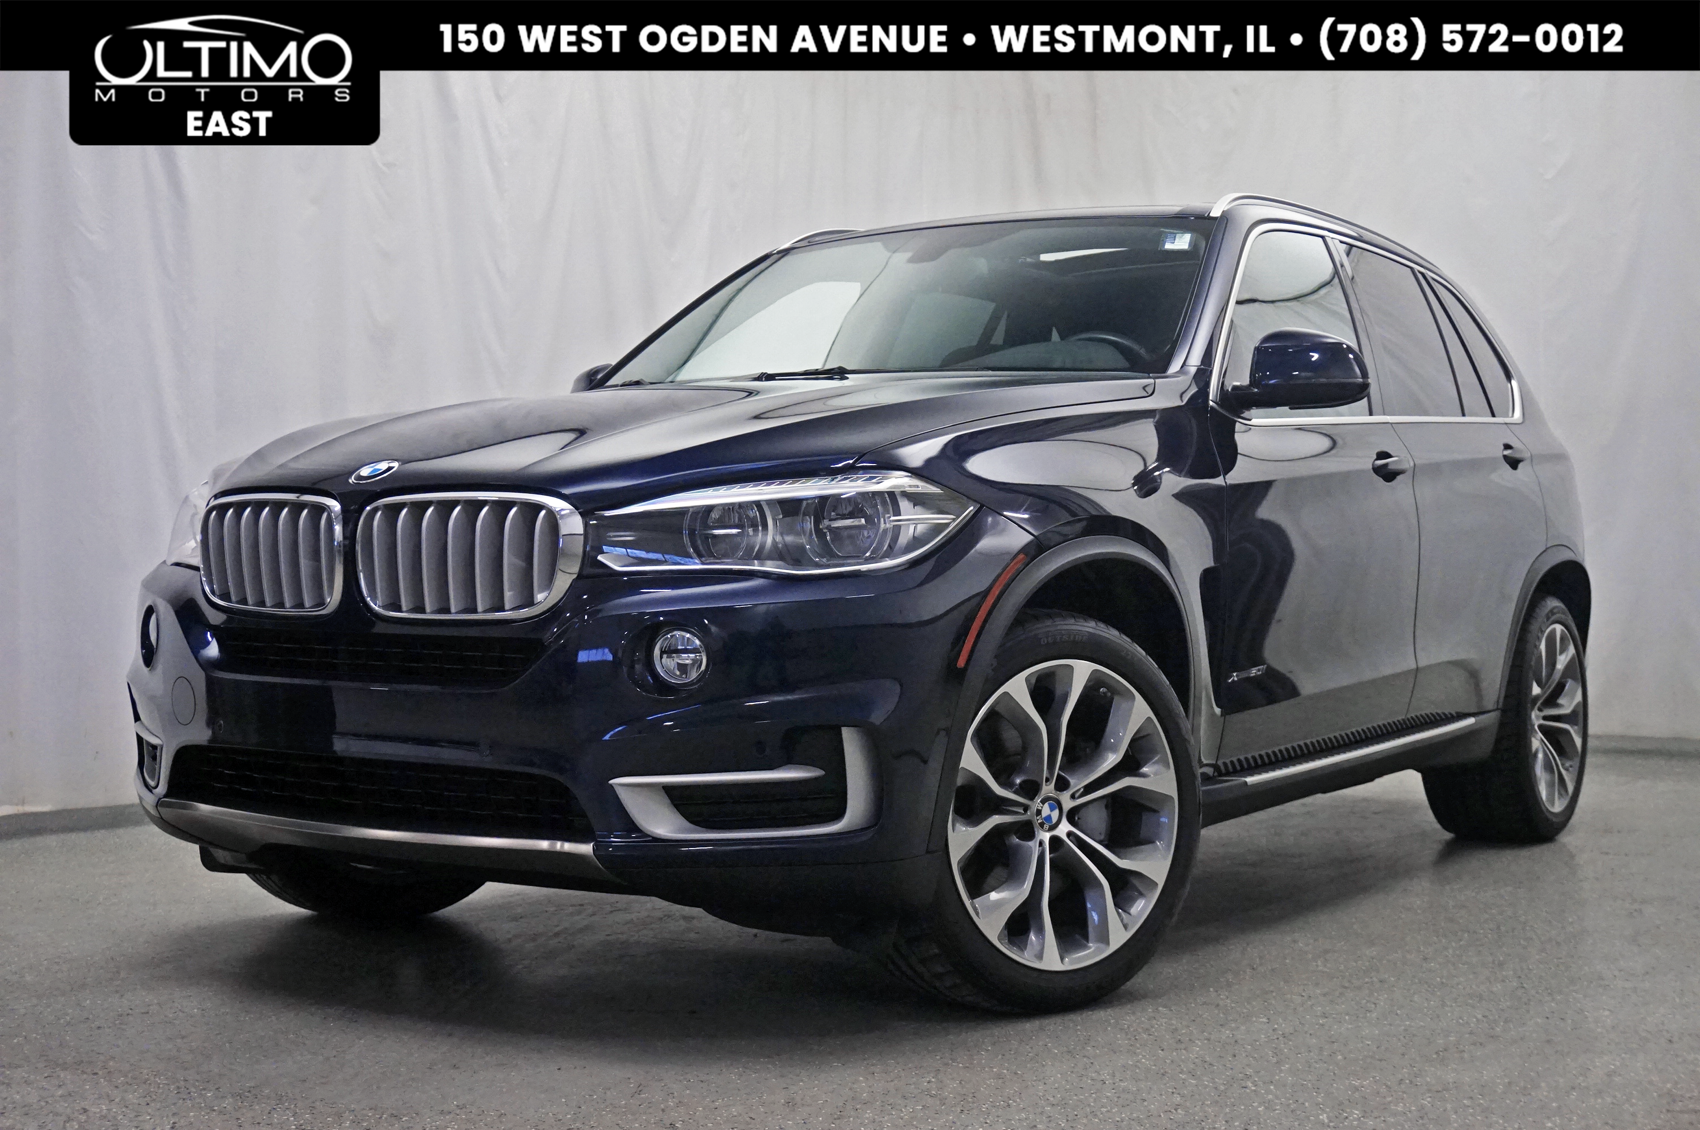 Pre-Owned 2016 BMW X5 xDrive50i Executive Pkg, Lighting Pkg, Rear Camera, Harman Kardon Sound